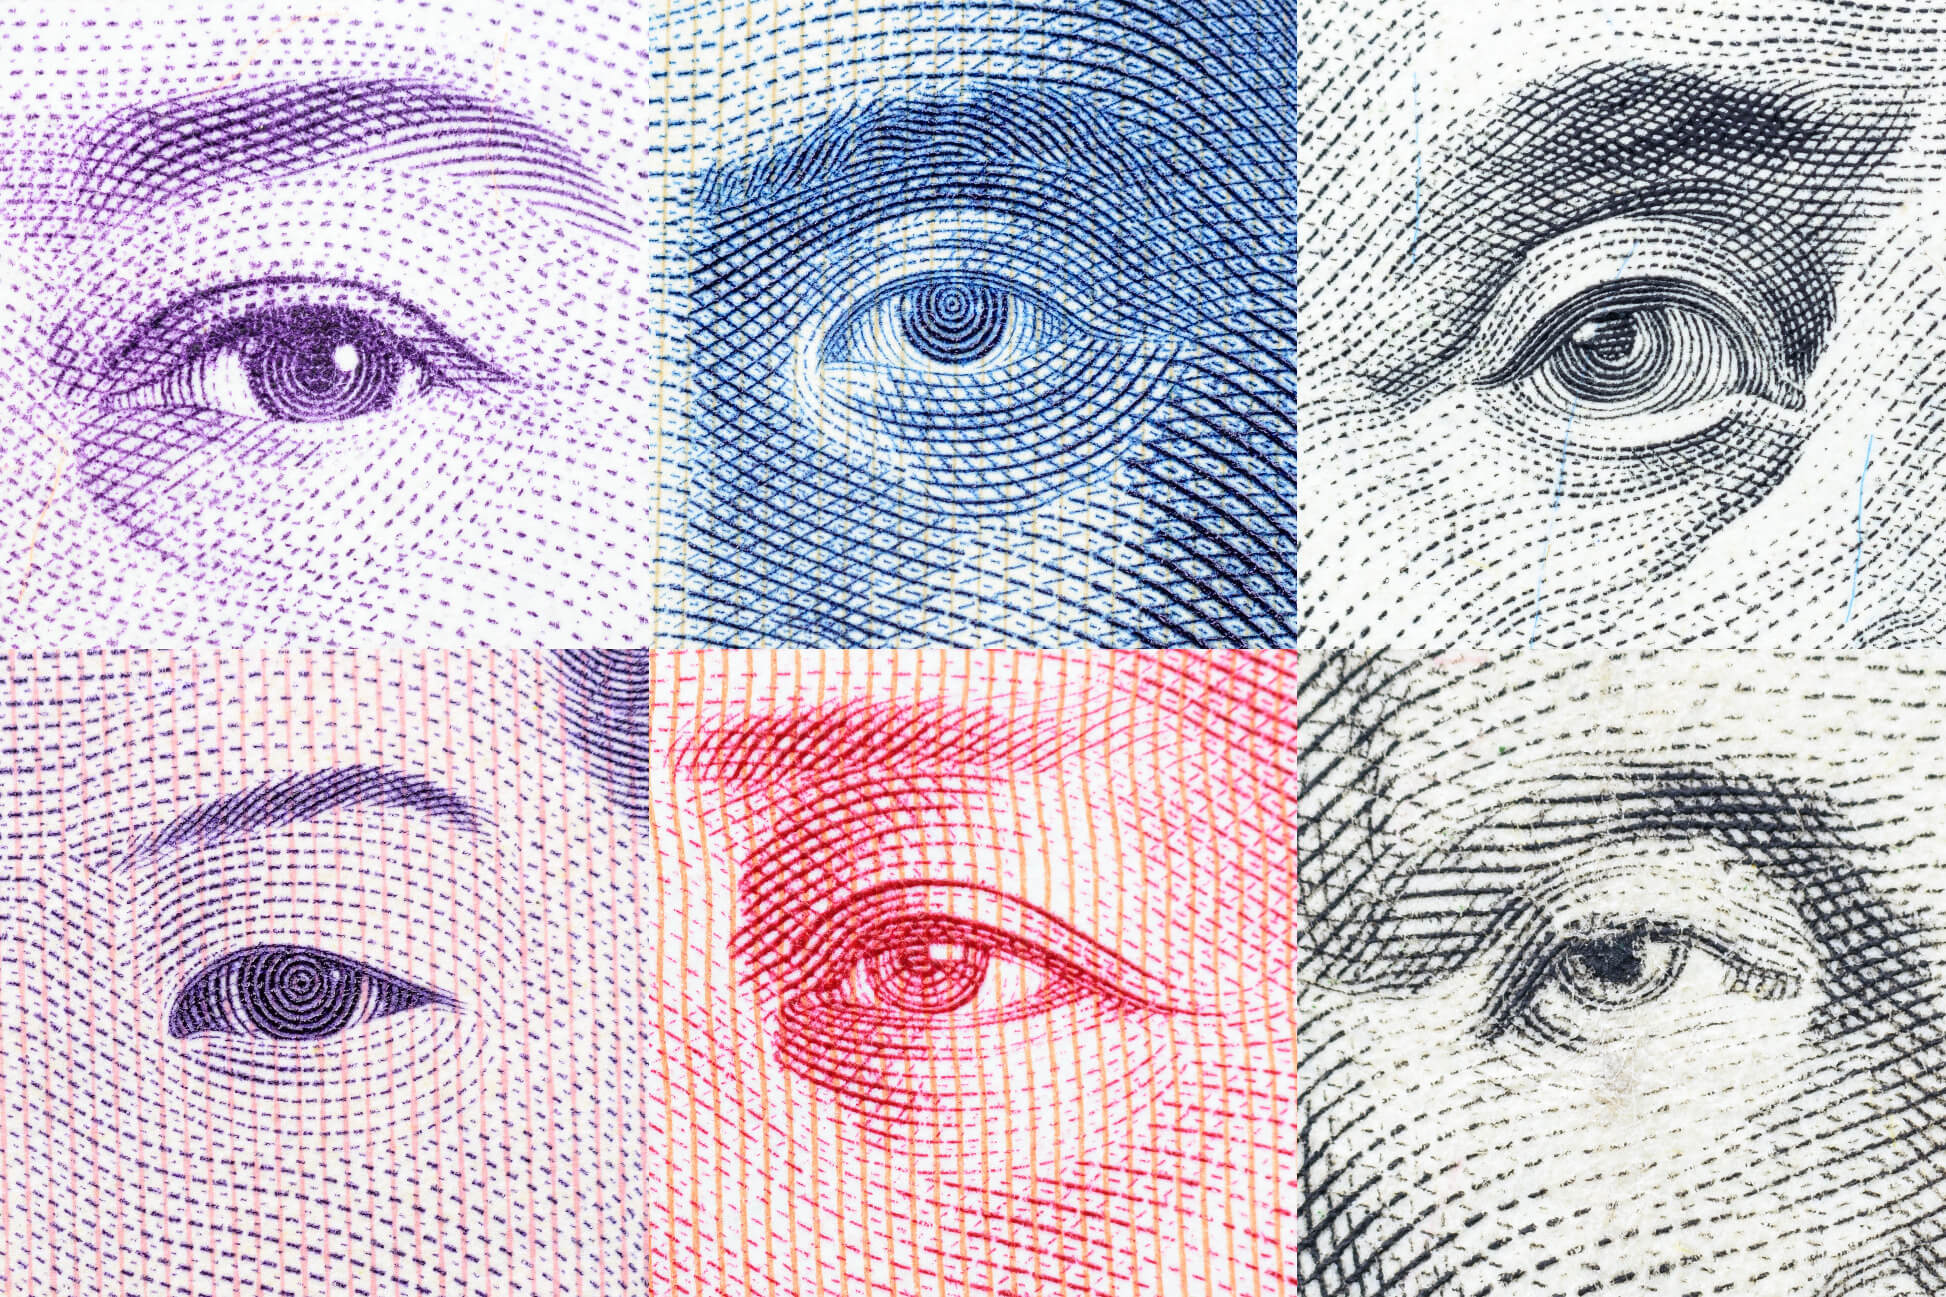 What Might Change The Currency Composition of Central Banks' Reserve Holdings?